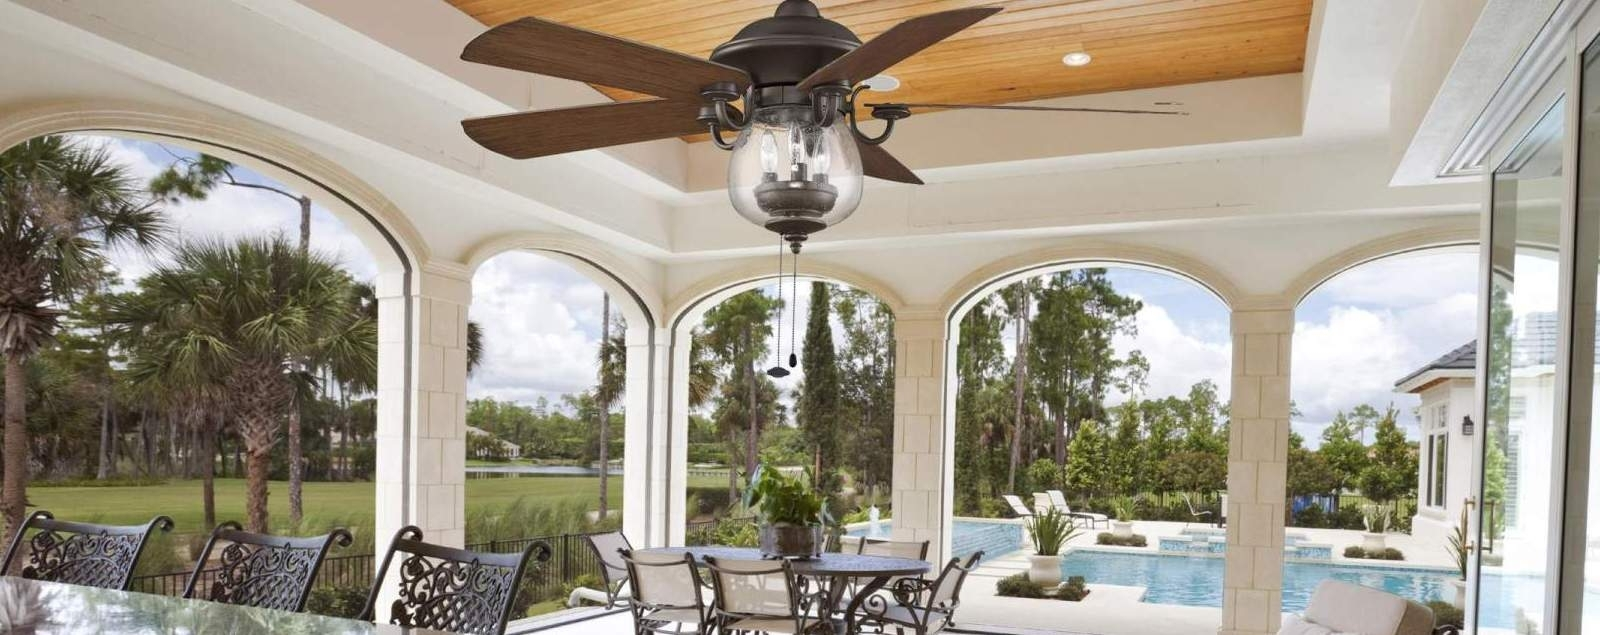 Outdoor Ceiling Fans – Choose Wet Rated Or Damp Rated For Your Space! In Well Liked Outdoor Ceiling Fans With Damp Rated Lights (View 12 of 20)